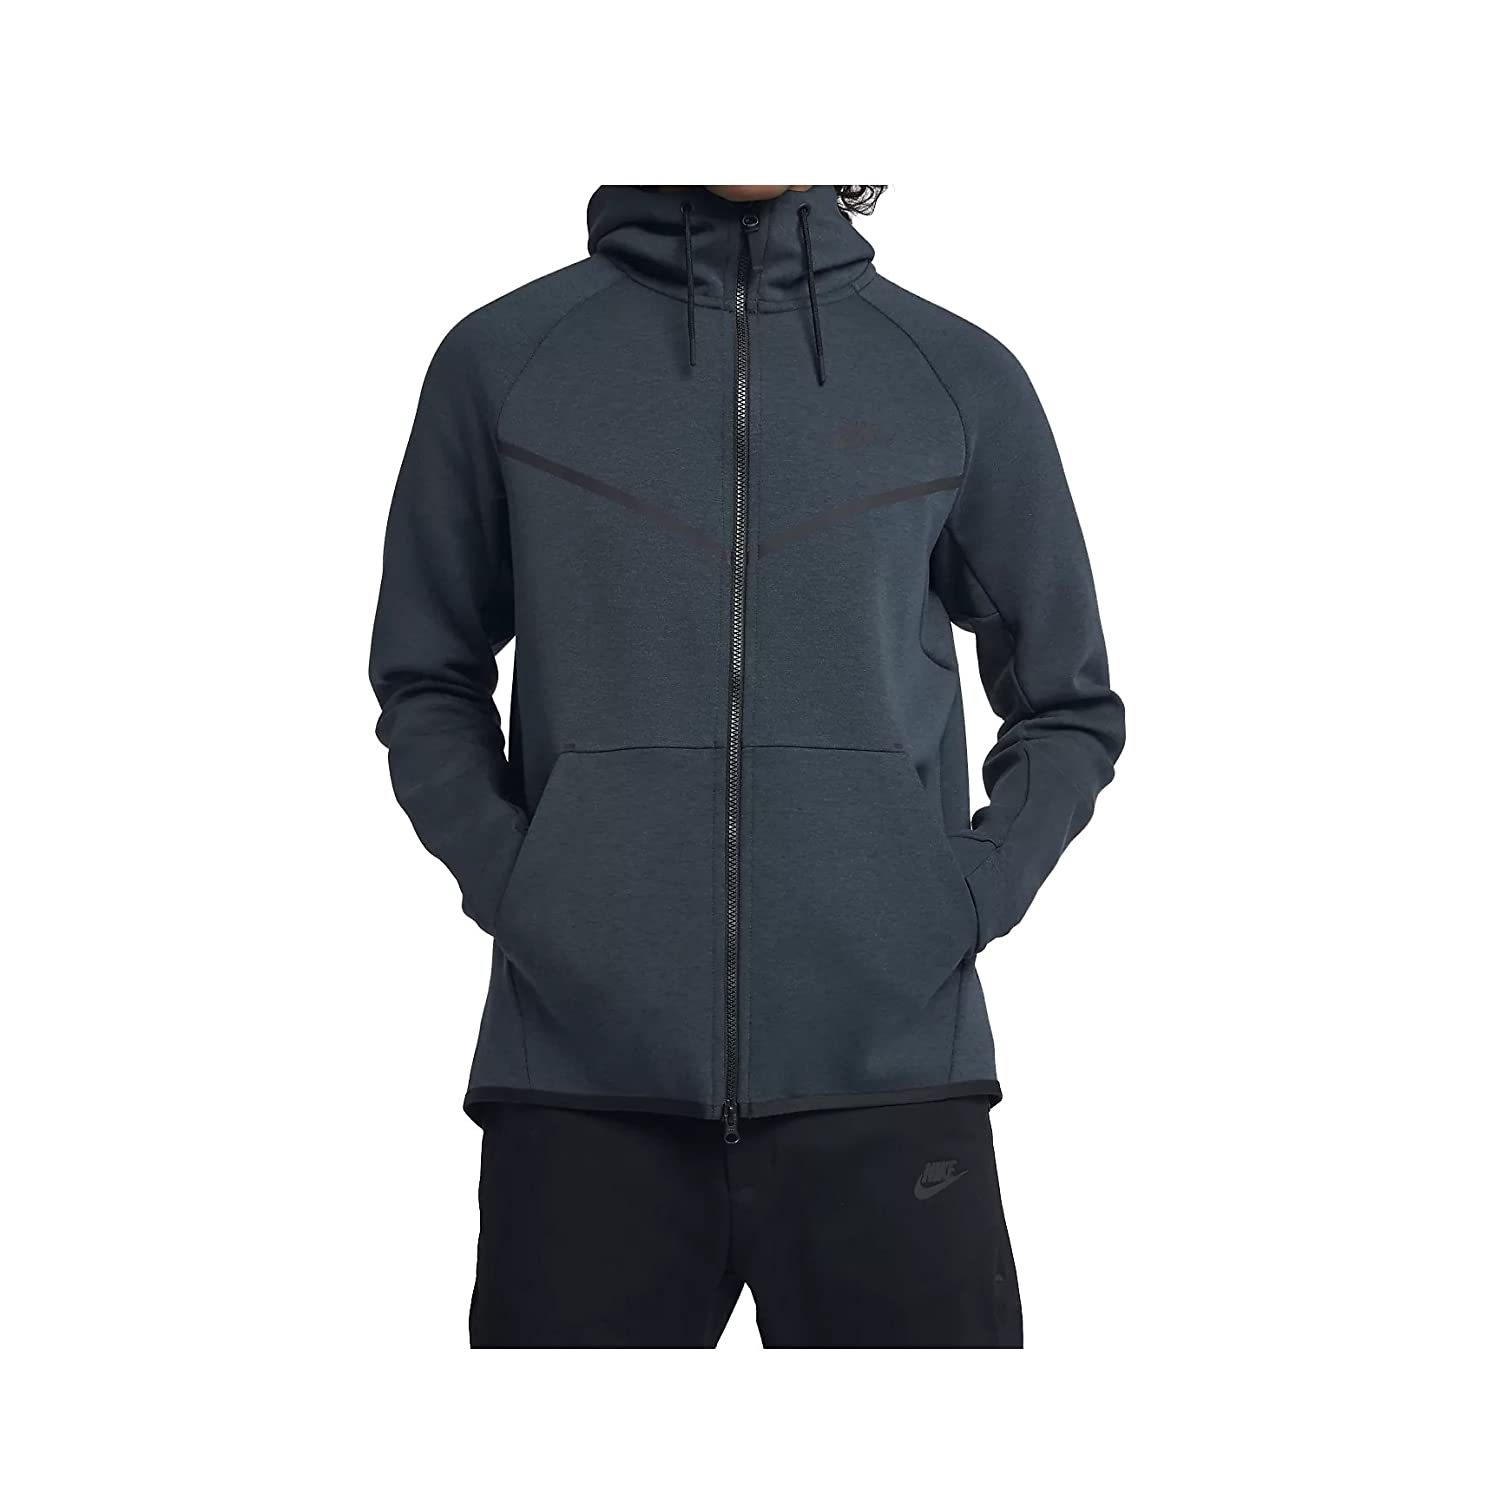 317972d228 Amazon.com  Men s Nike Sportswear Windrunner Jacket  NIKE  Clothing